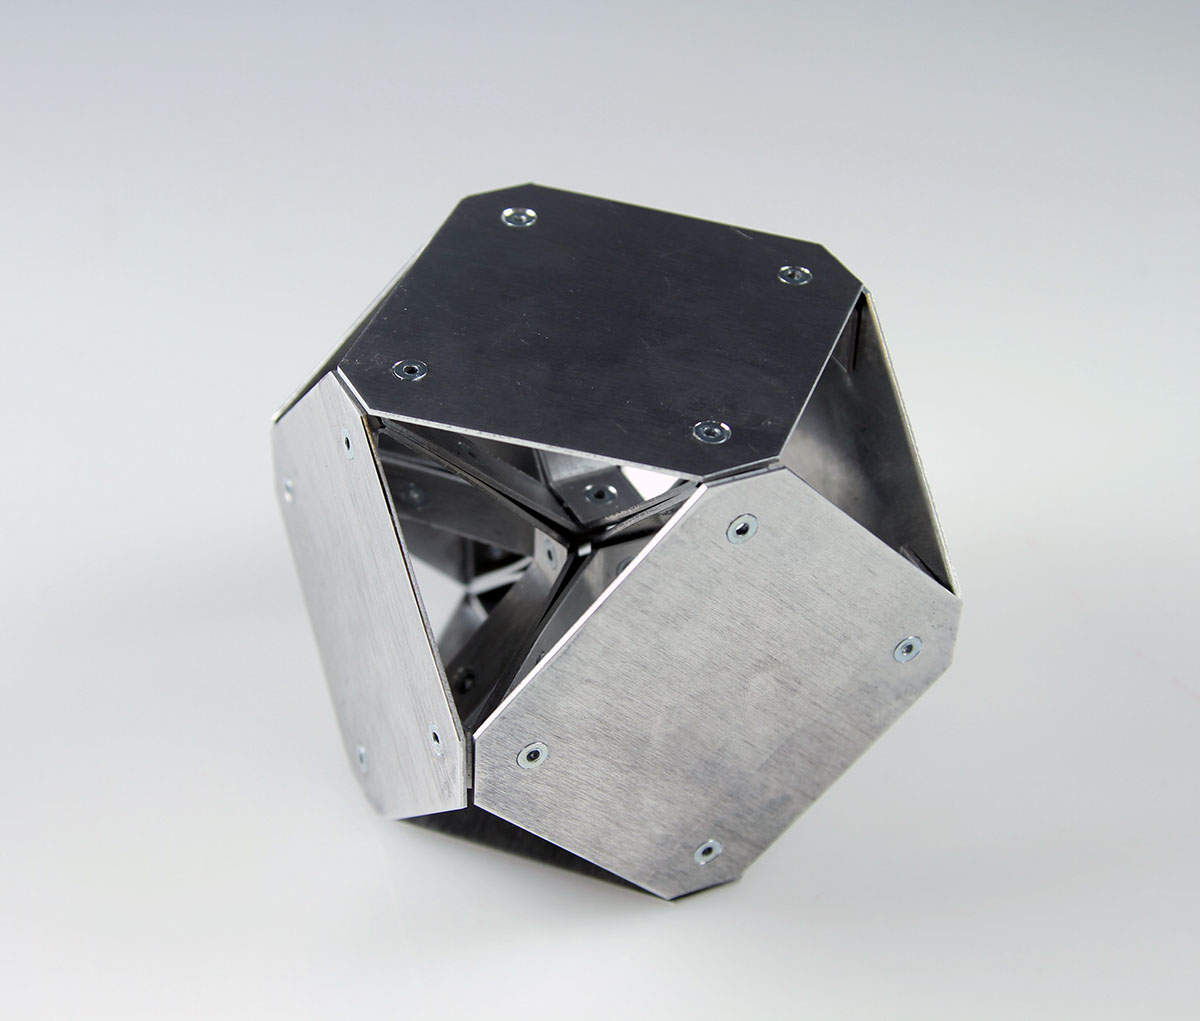 Aluminum Forms on Behance